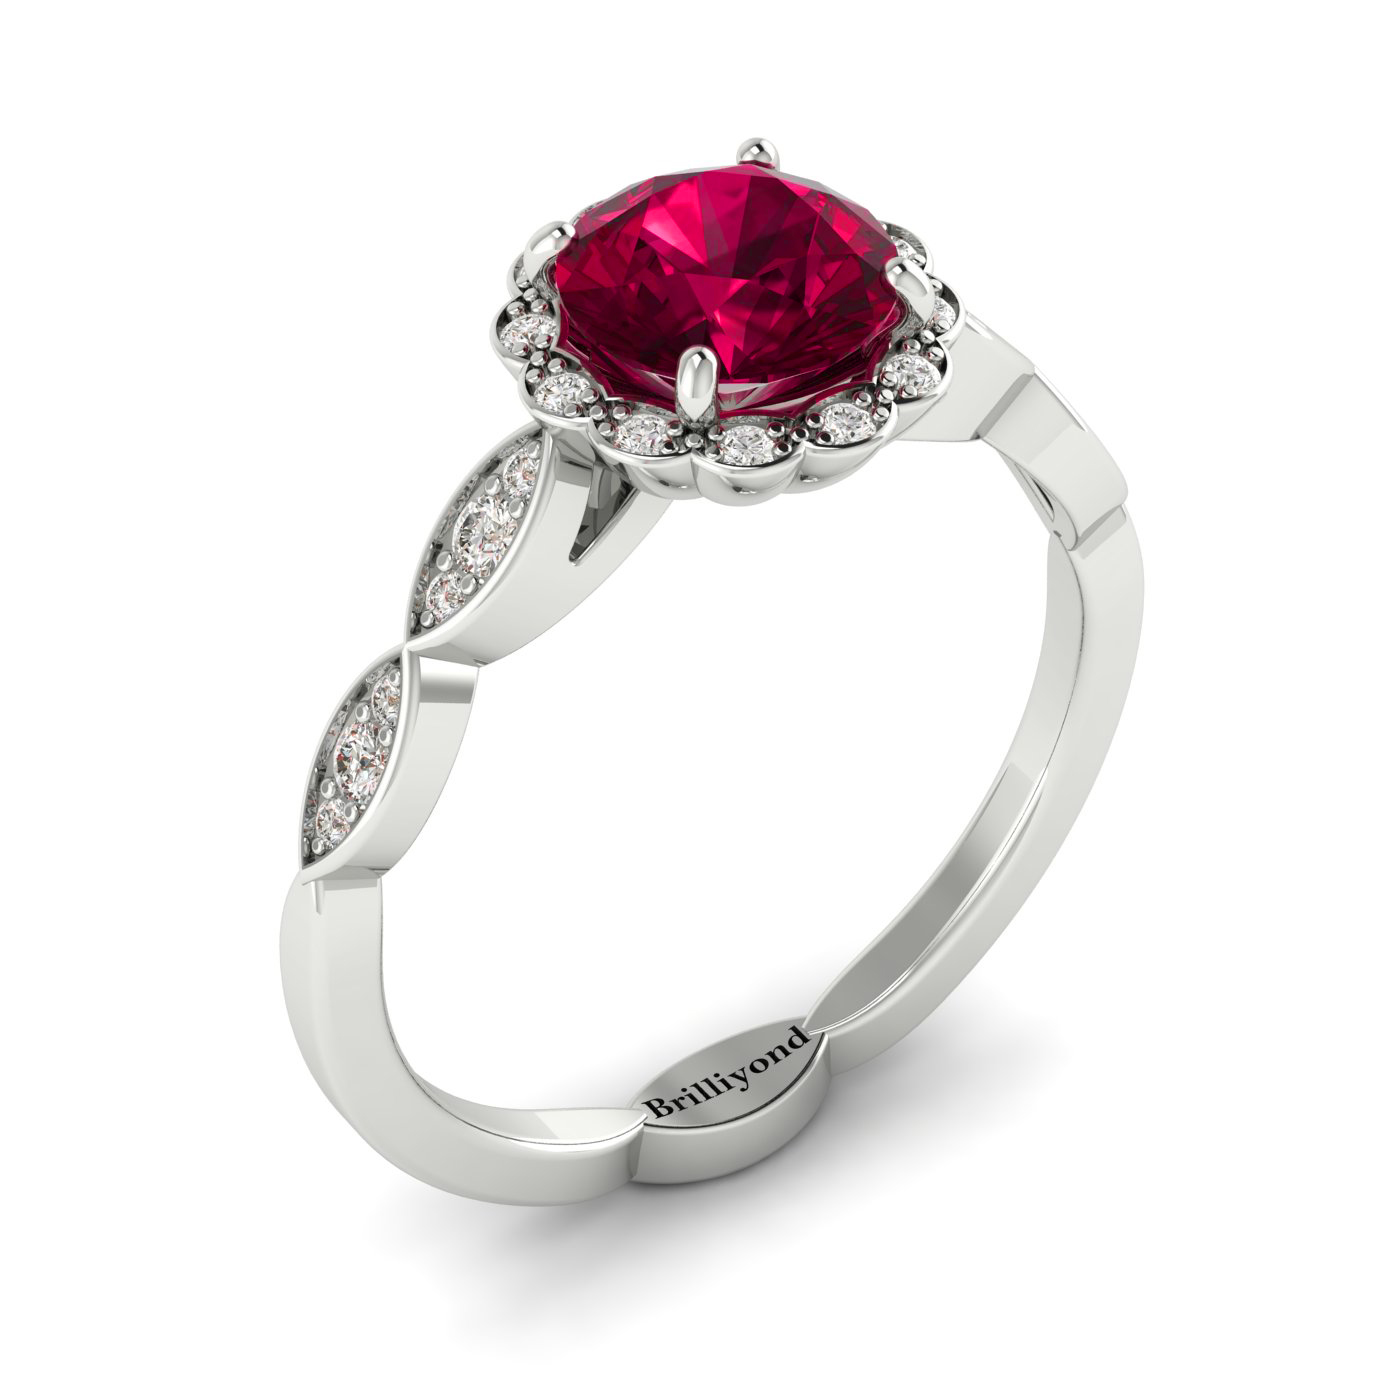 Floral Halo Engagement Ring with Ruby and Diamonds on 18k White Gold